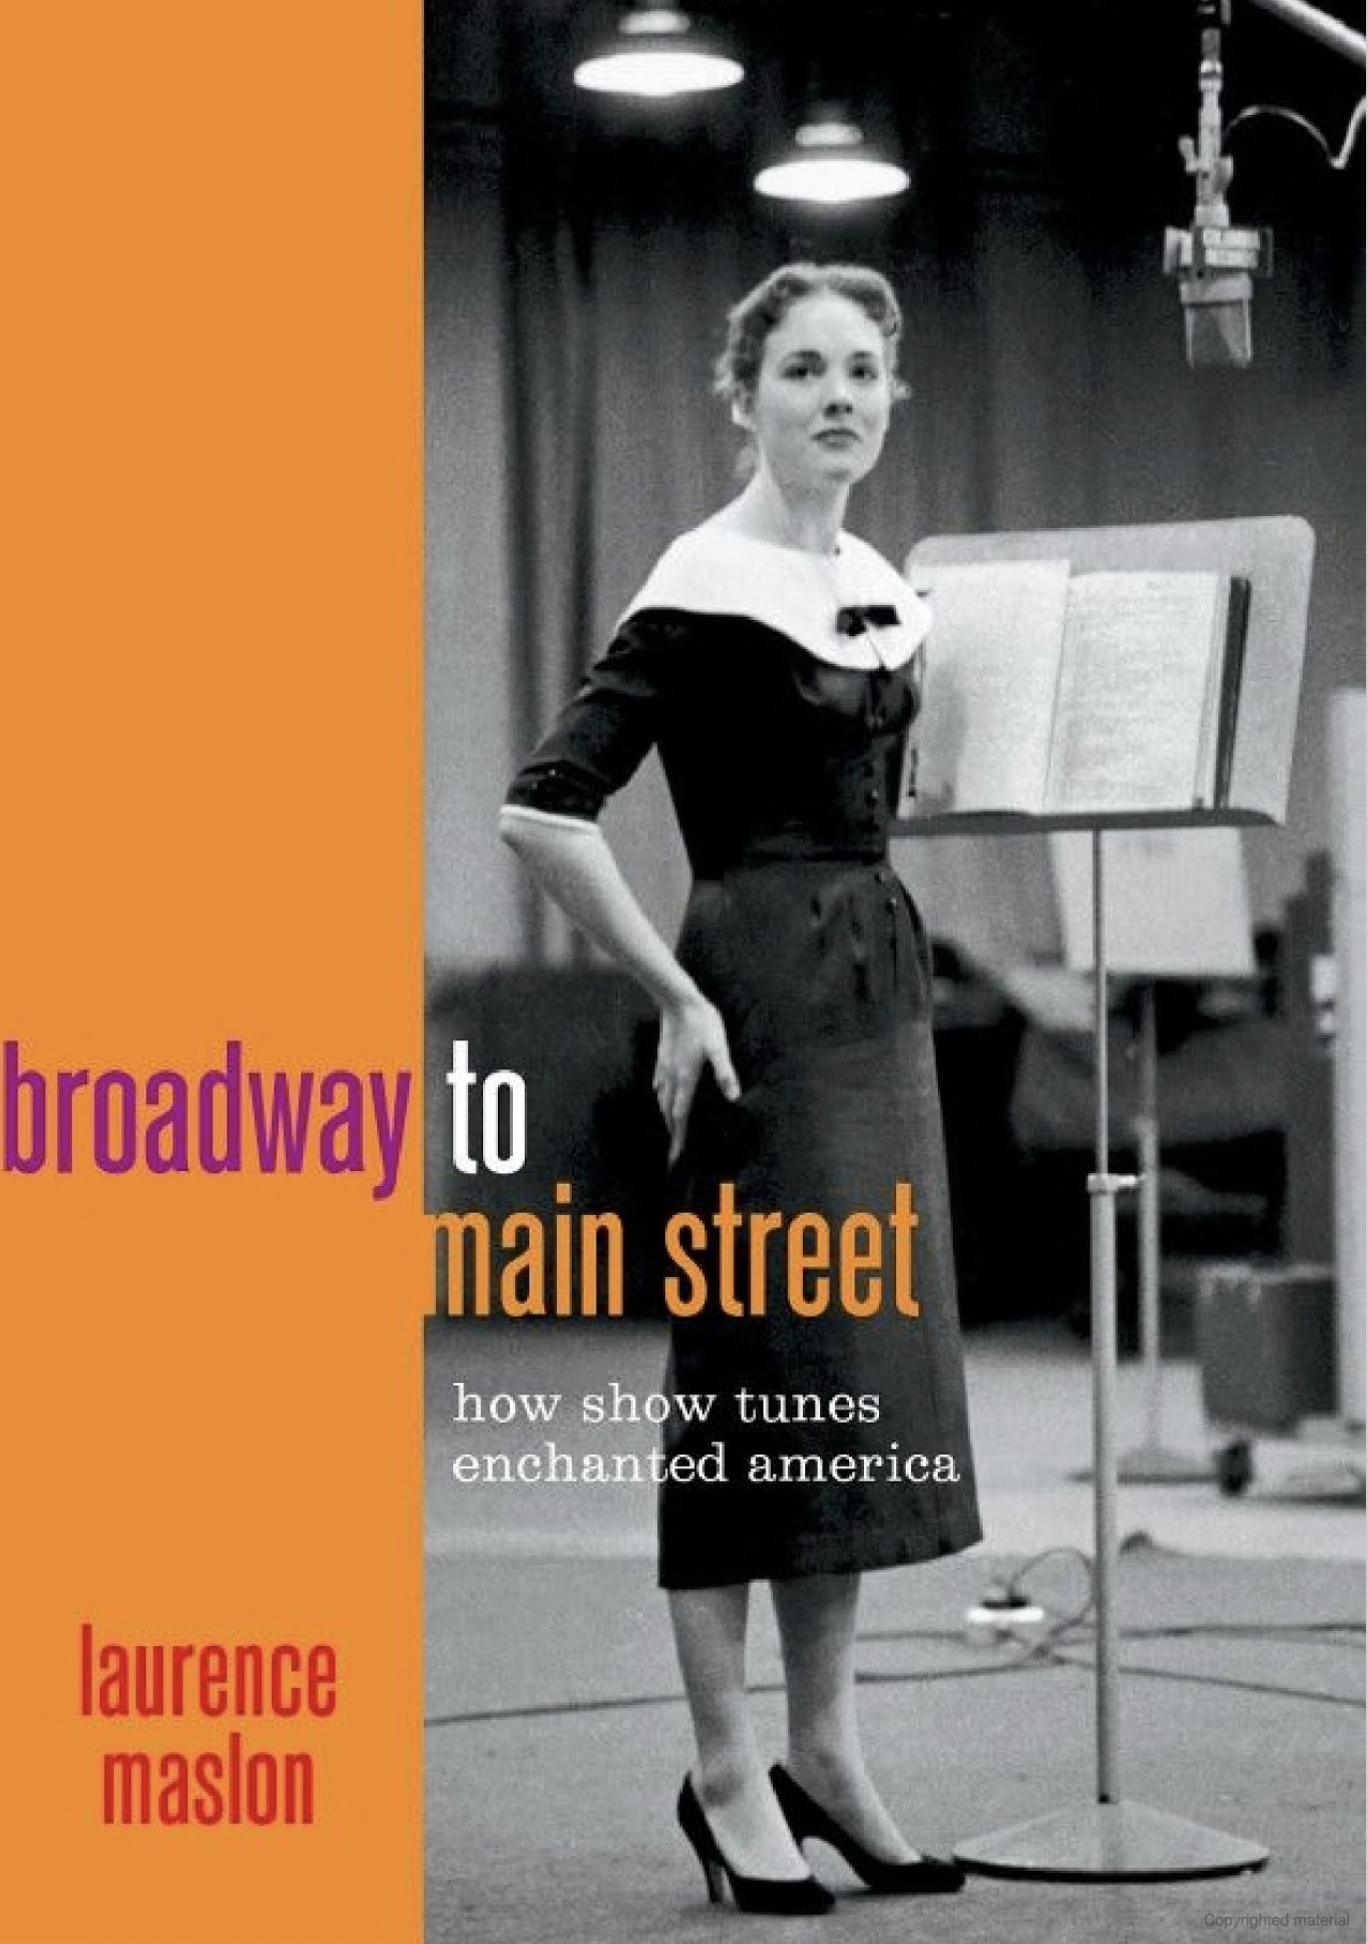 """Broadway to Main Street"" by Laurence Maslon"